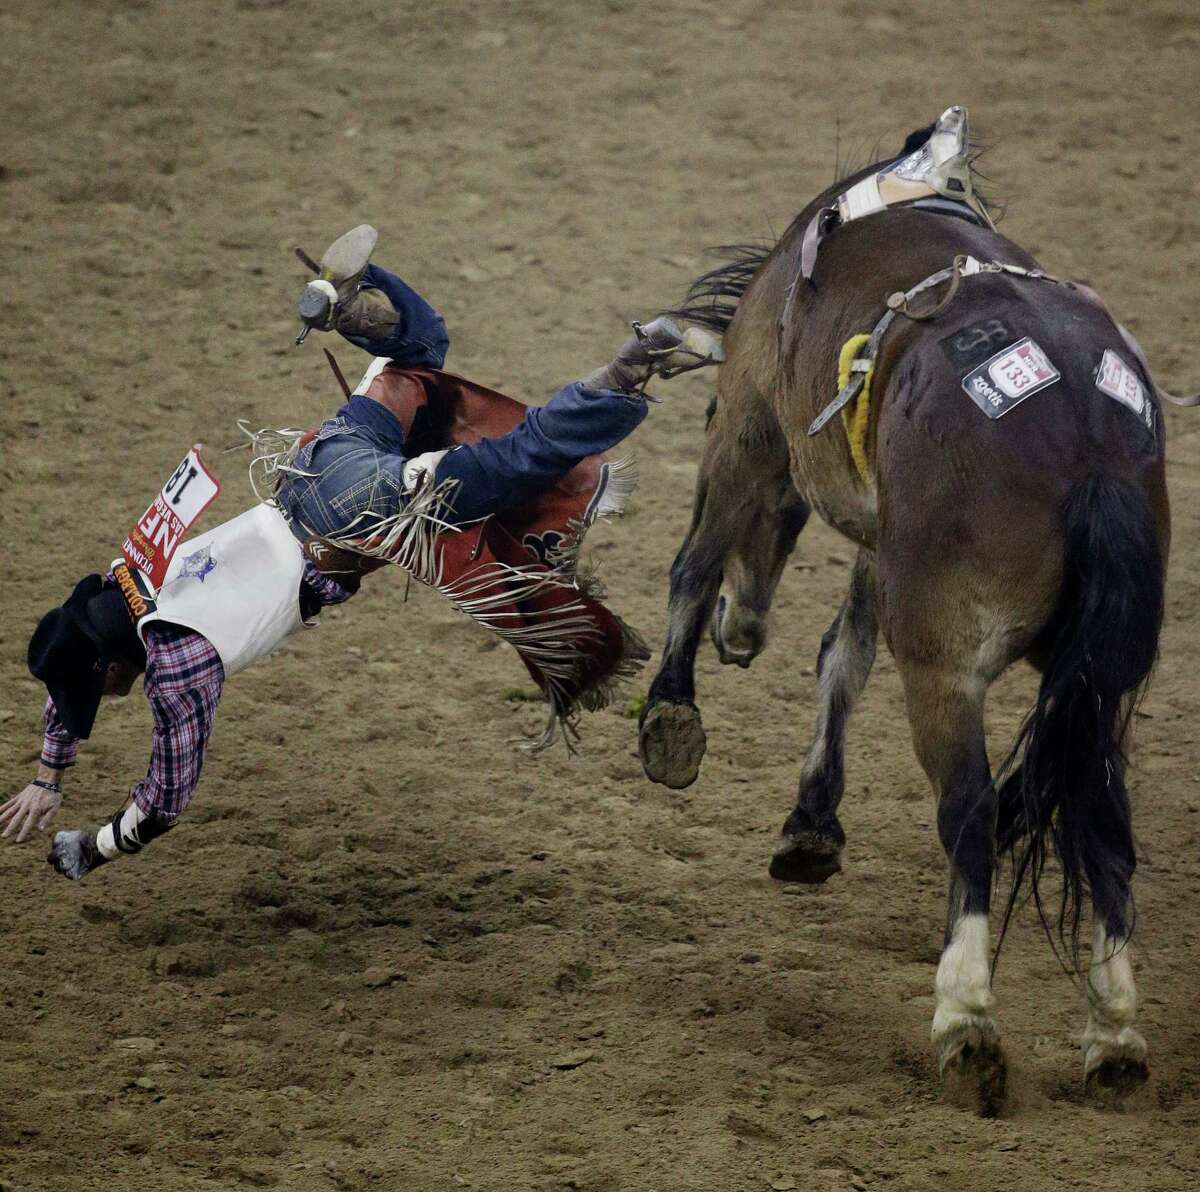 Tim O'Connell from Zwingle, Iowa, gets thrown from his horse in the bareback riding event during the eighth go-round of the National Finals Rodeo Thursday, Dec. 11, 2014, in Las Vegas.